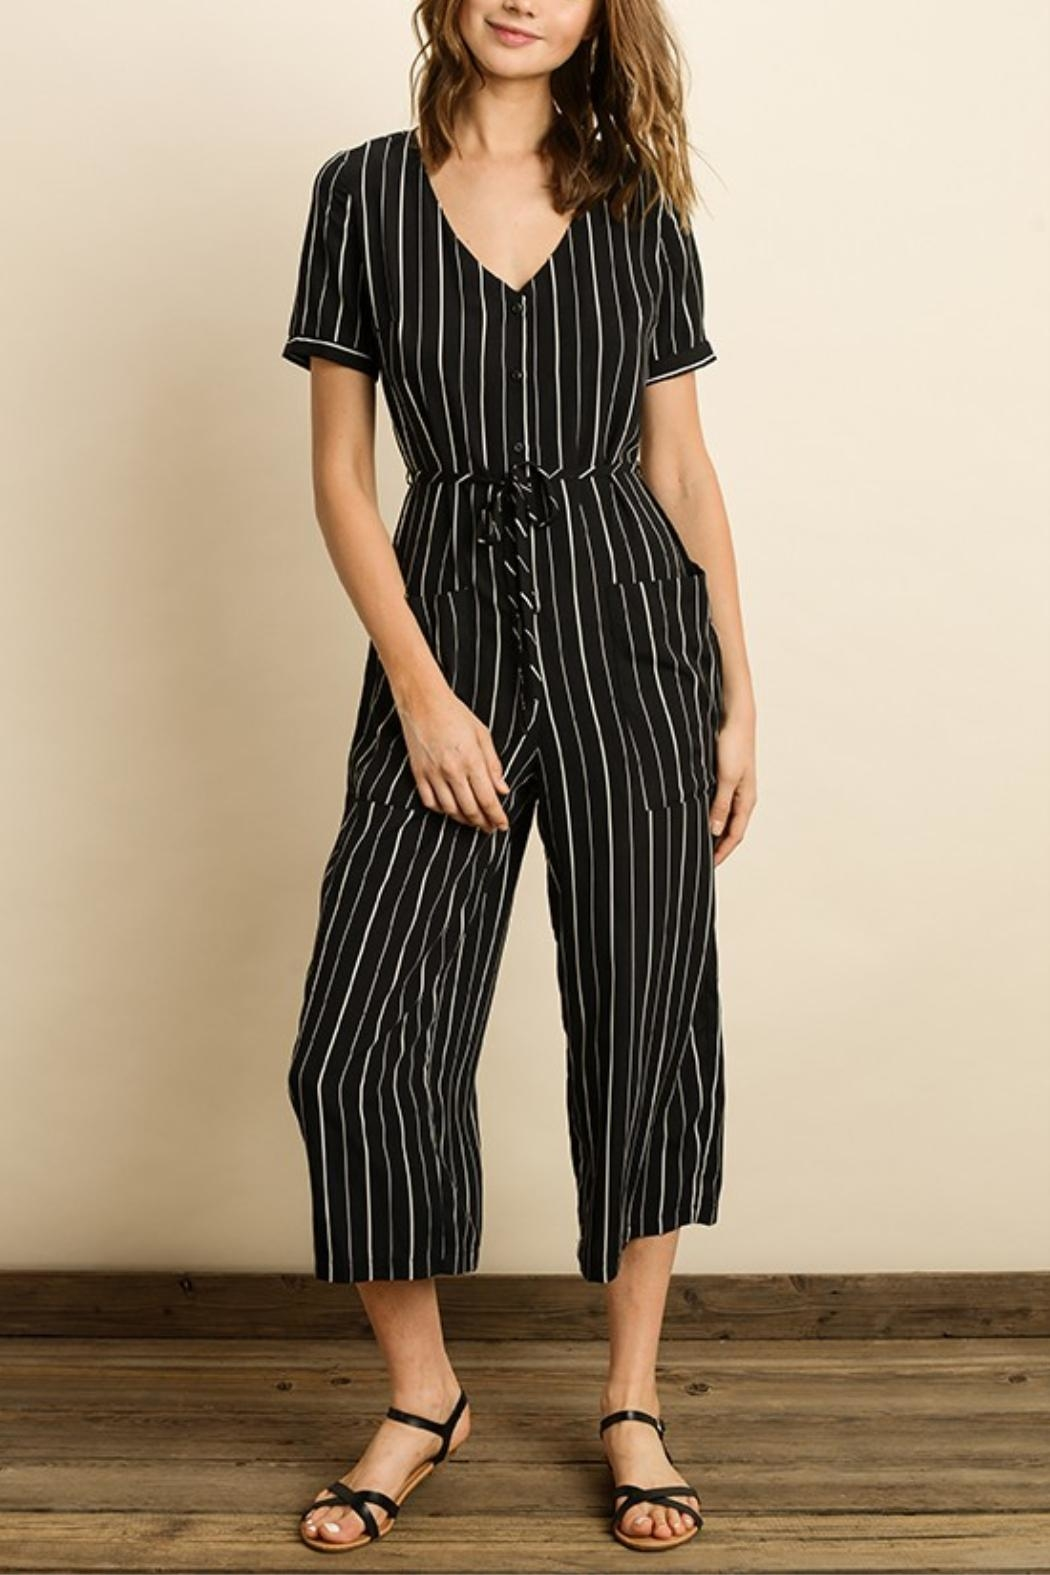 562eeed2bd47 dress forum Black Striped Jumpsuit from California by Apricot Lane ...